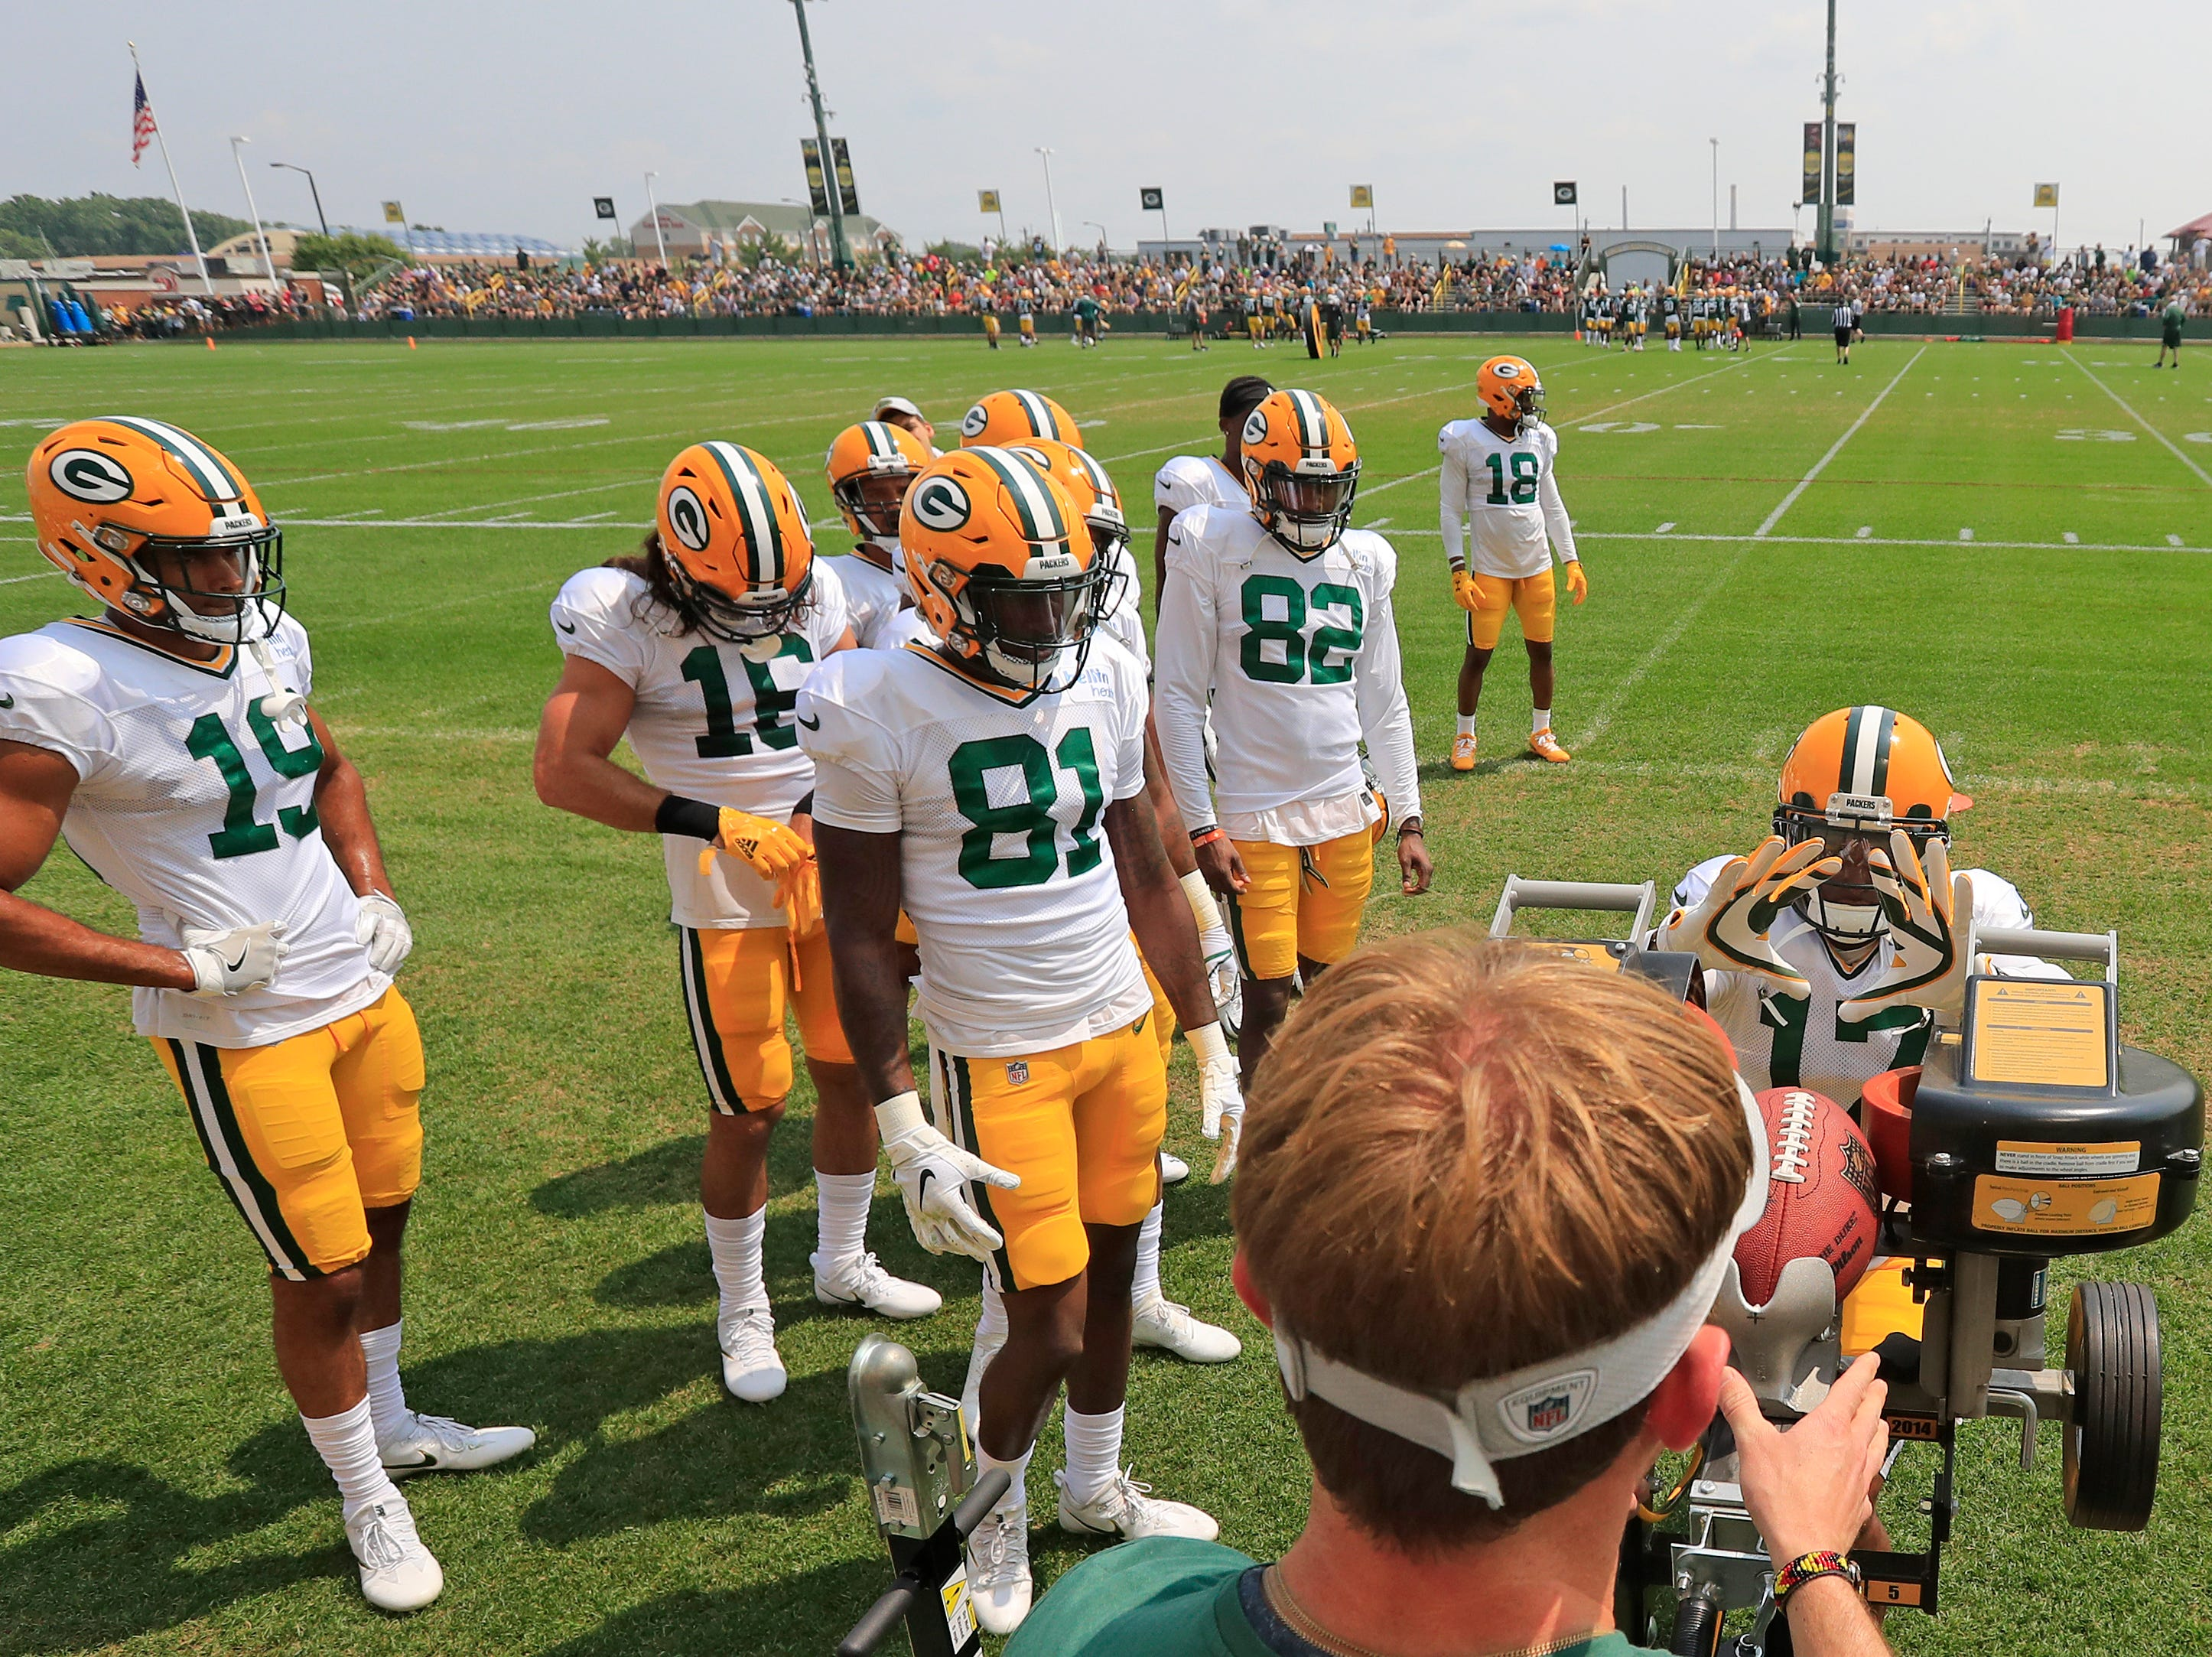 Green Bay Packers wide receiver Davante Adams (17) during training camp practice at Ray Nitschke Field on Sunday, August 12, 2018 in Ashwaubenon, Wis. 